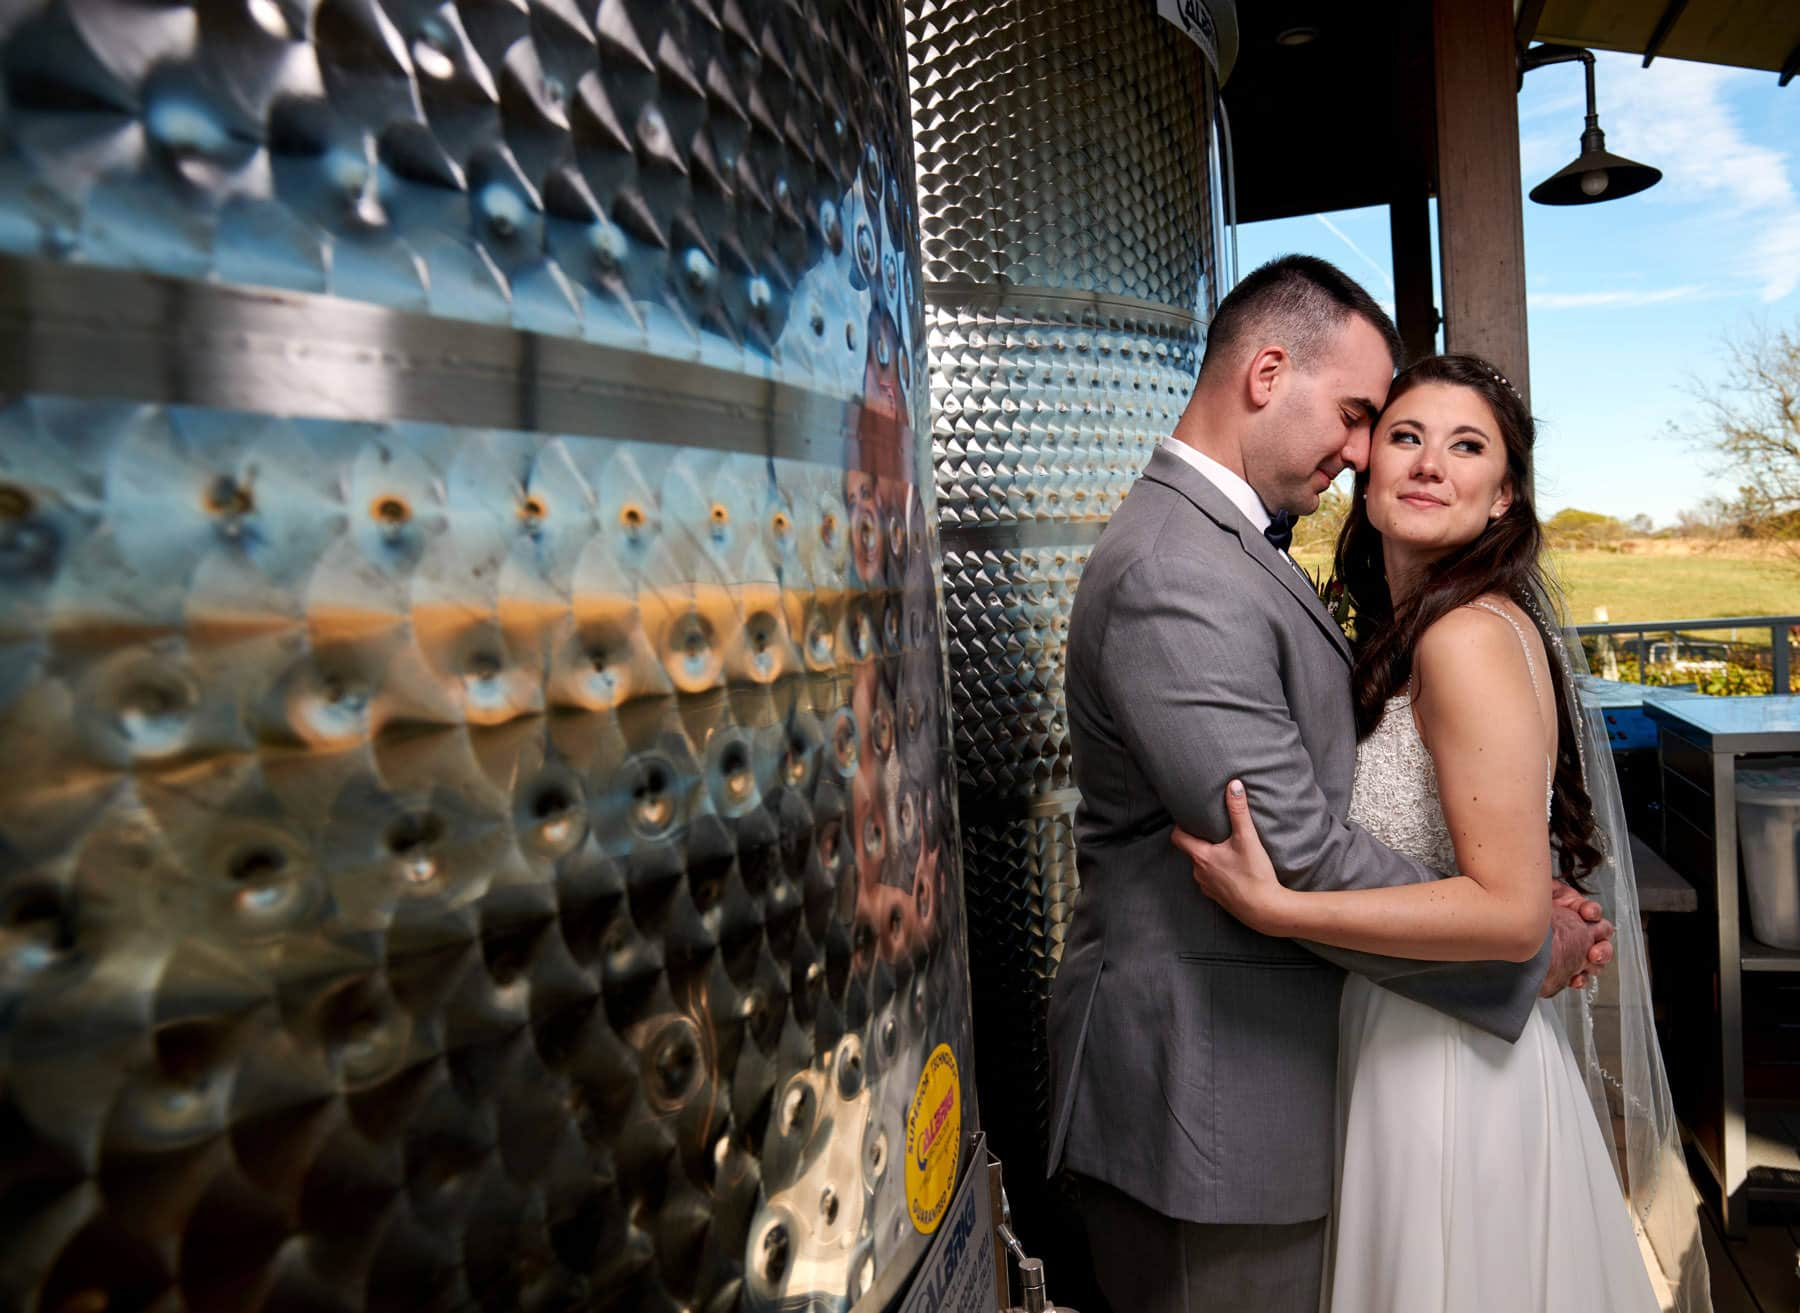 unique winery wedding photo